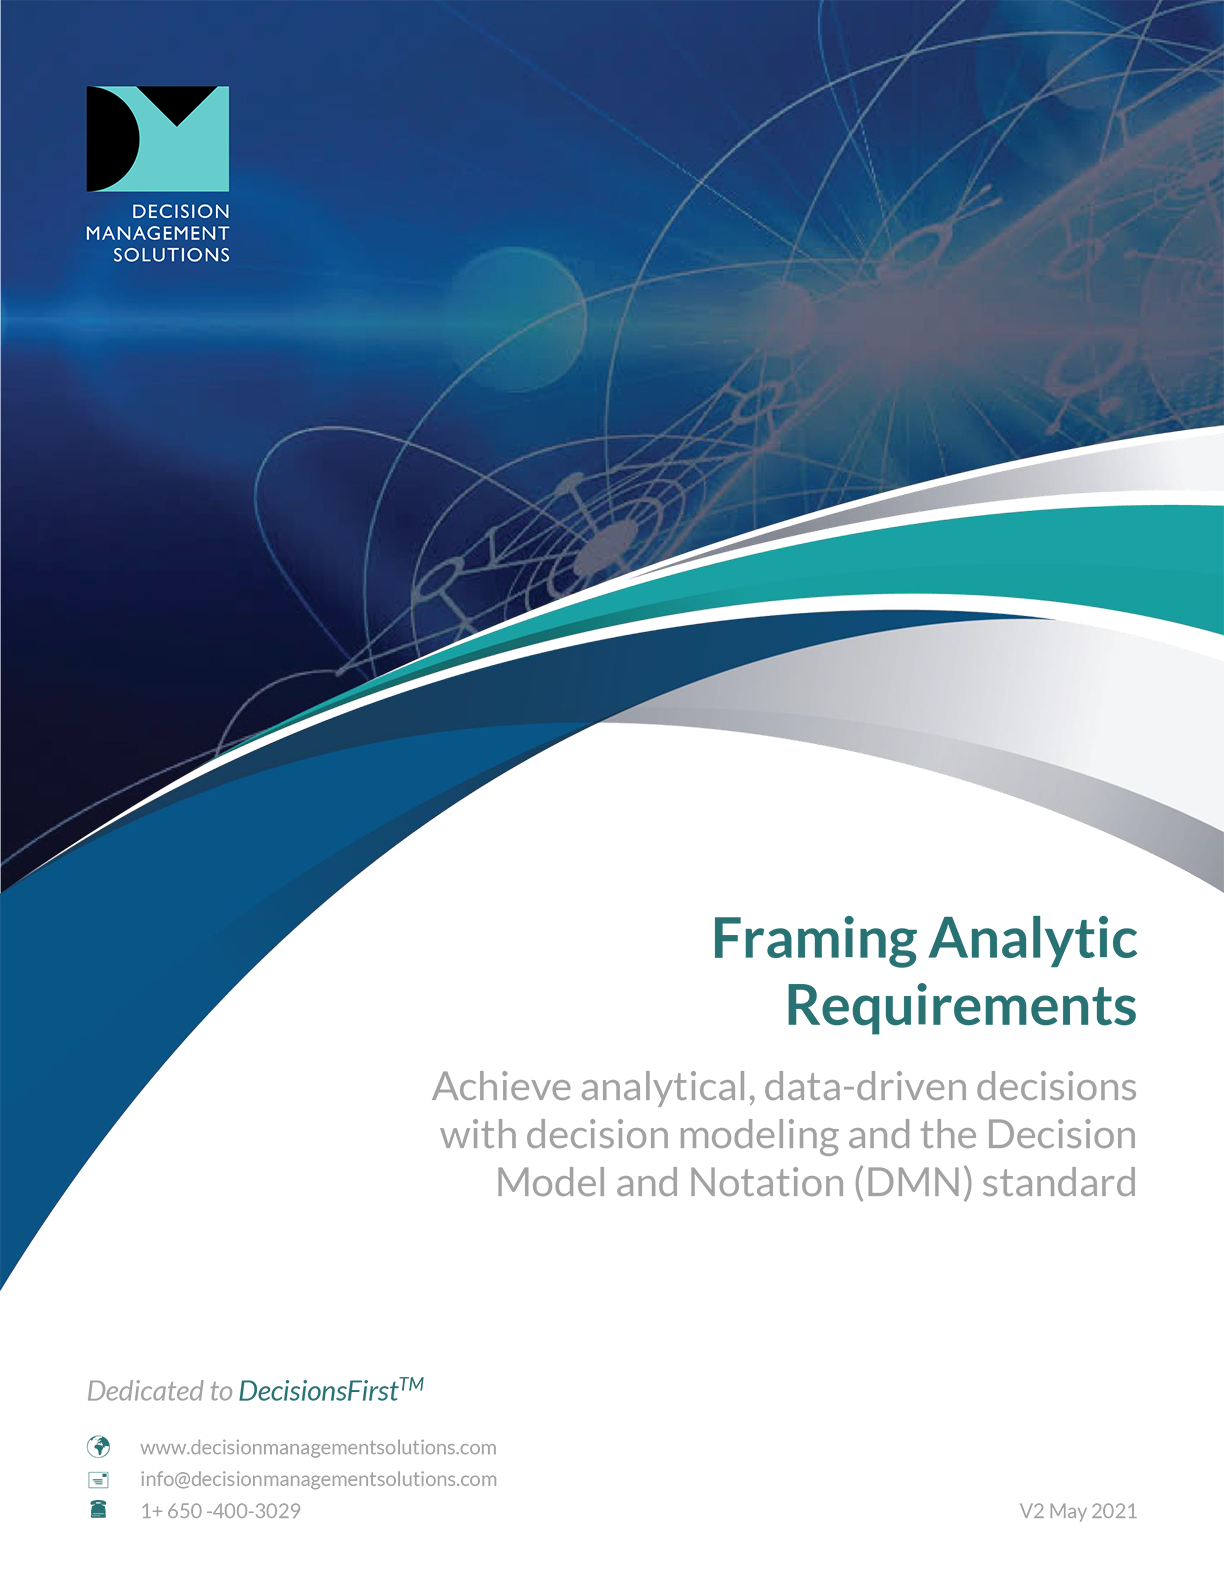 Adopt decision modeling to frame analytics and integrate business know-how